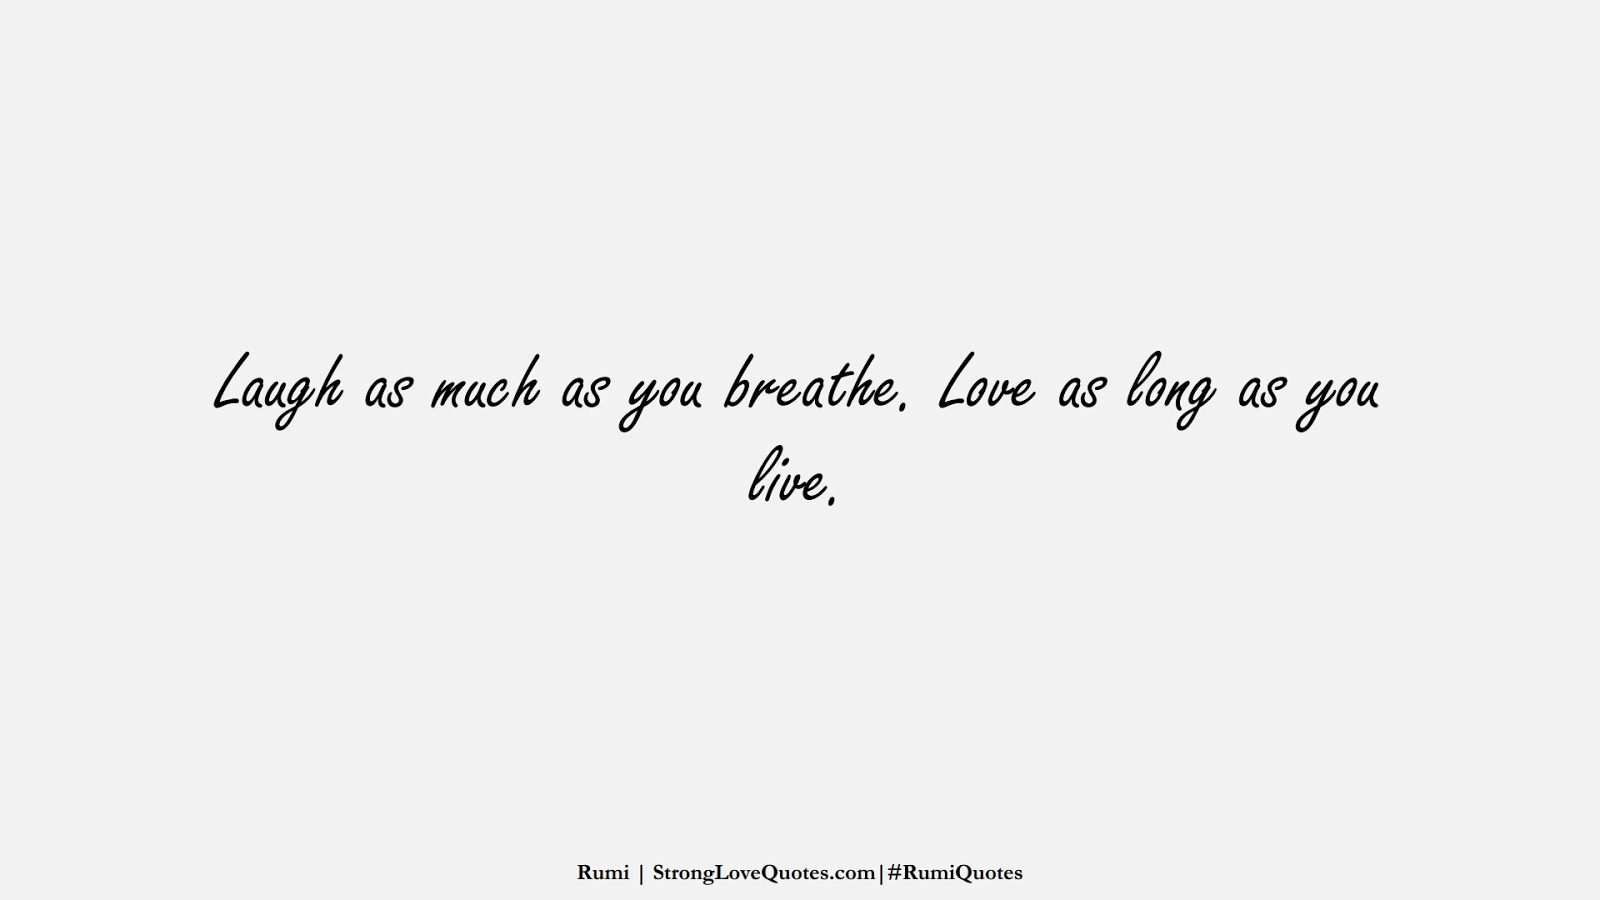 Laugh as much as you breathe. Love as long as you live. (Rumi);  #RumiQuotes